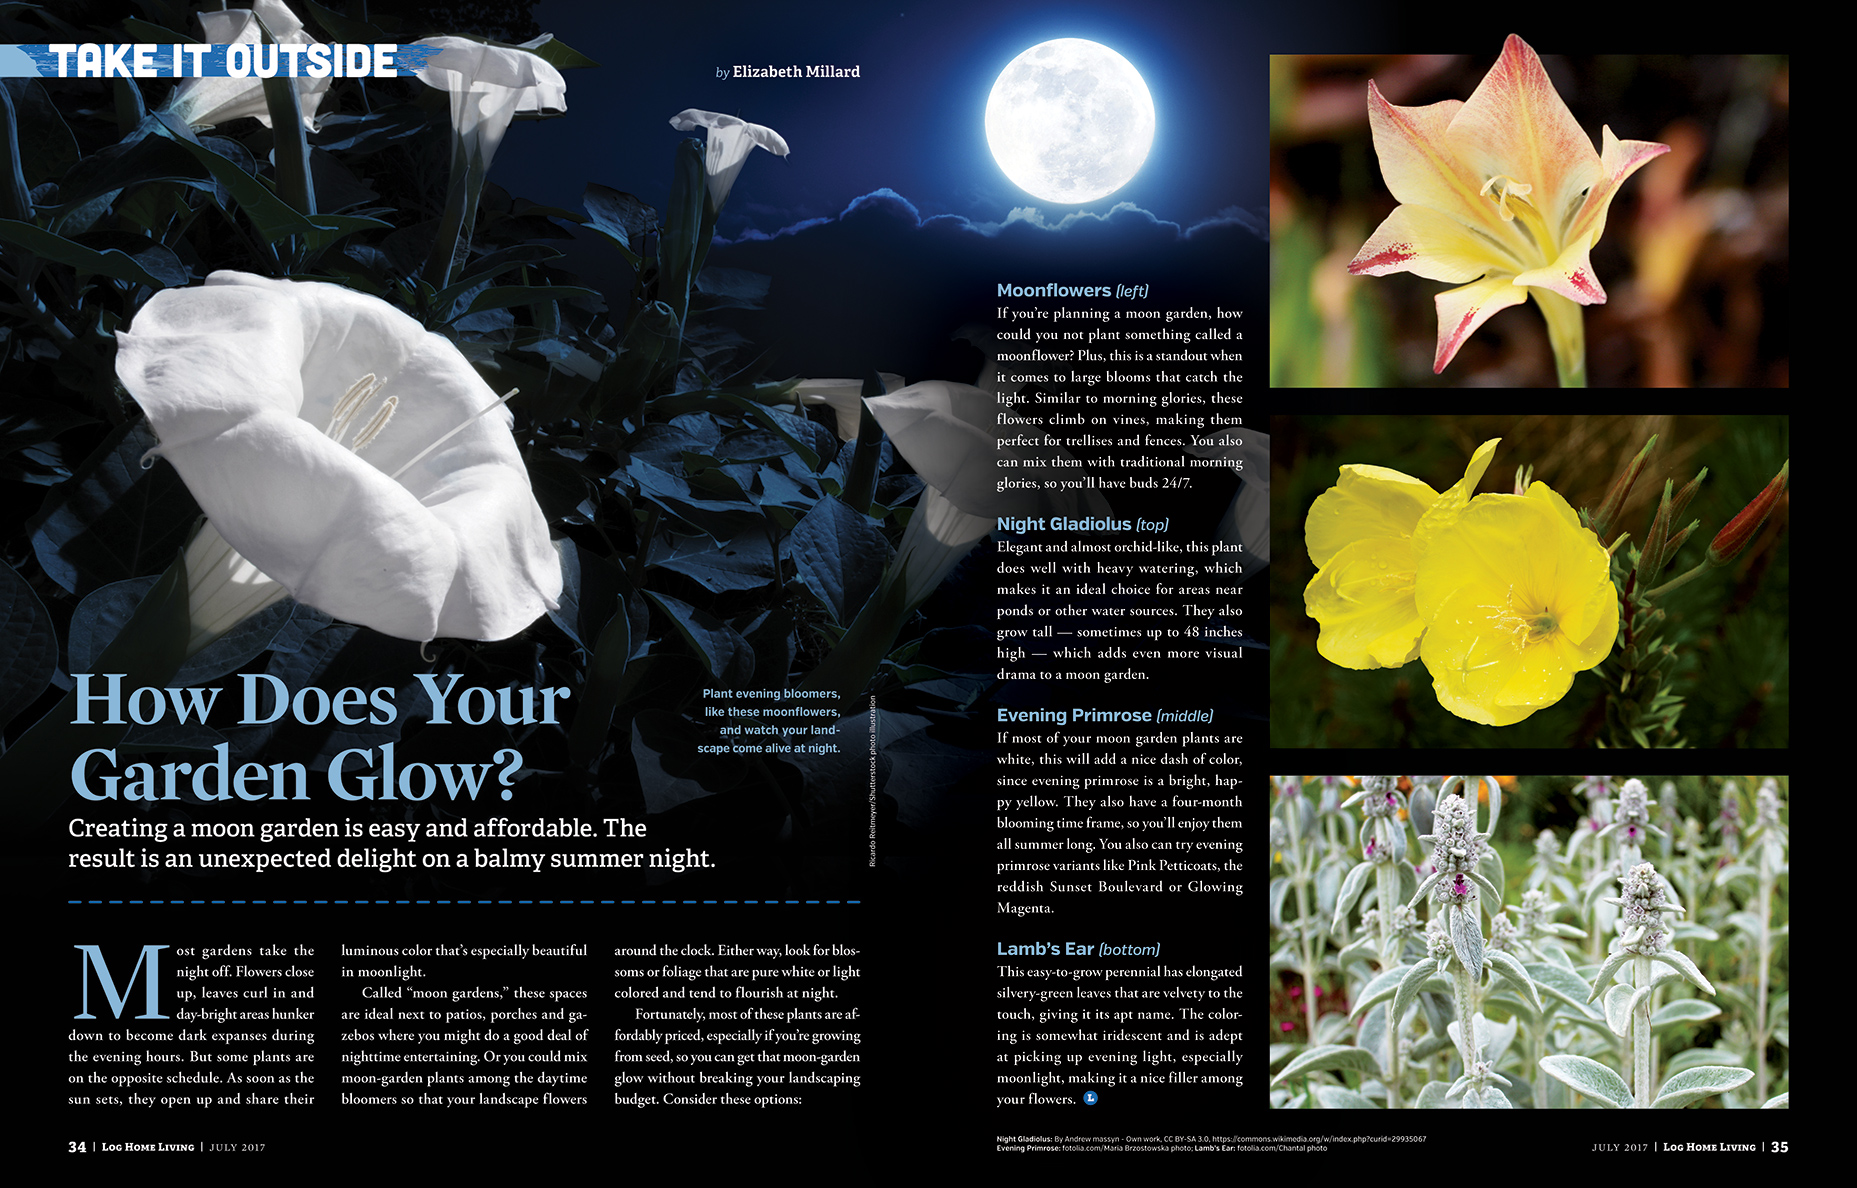 How Does Your Garden Glow?